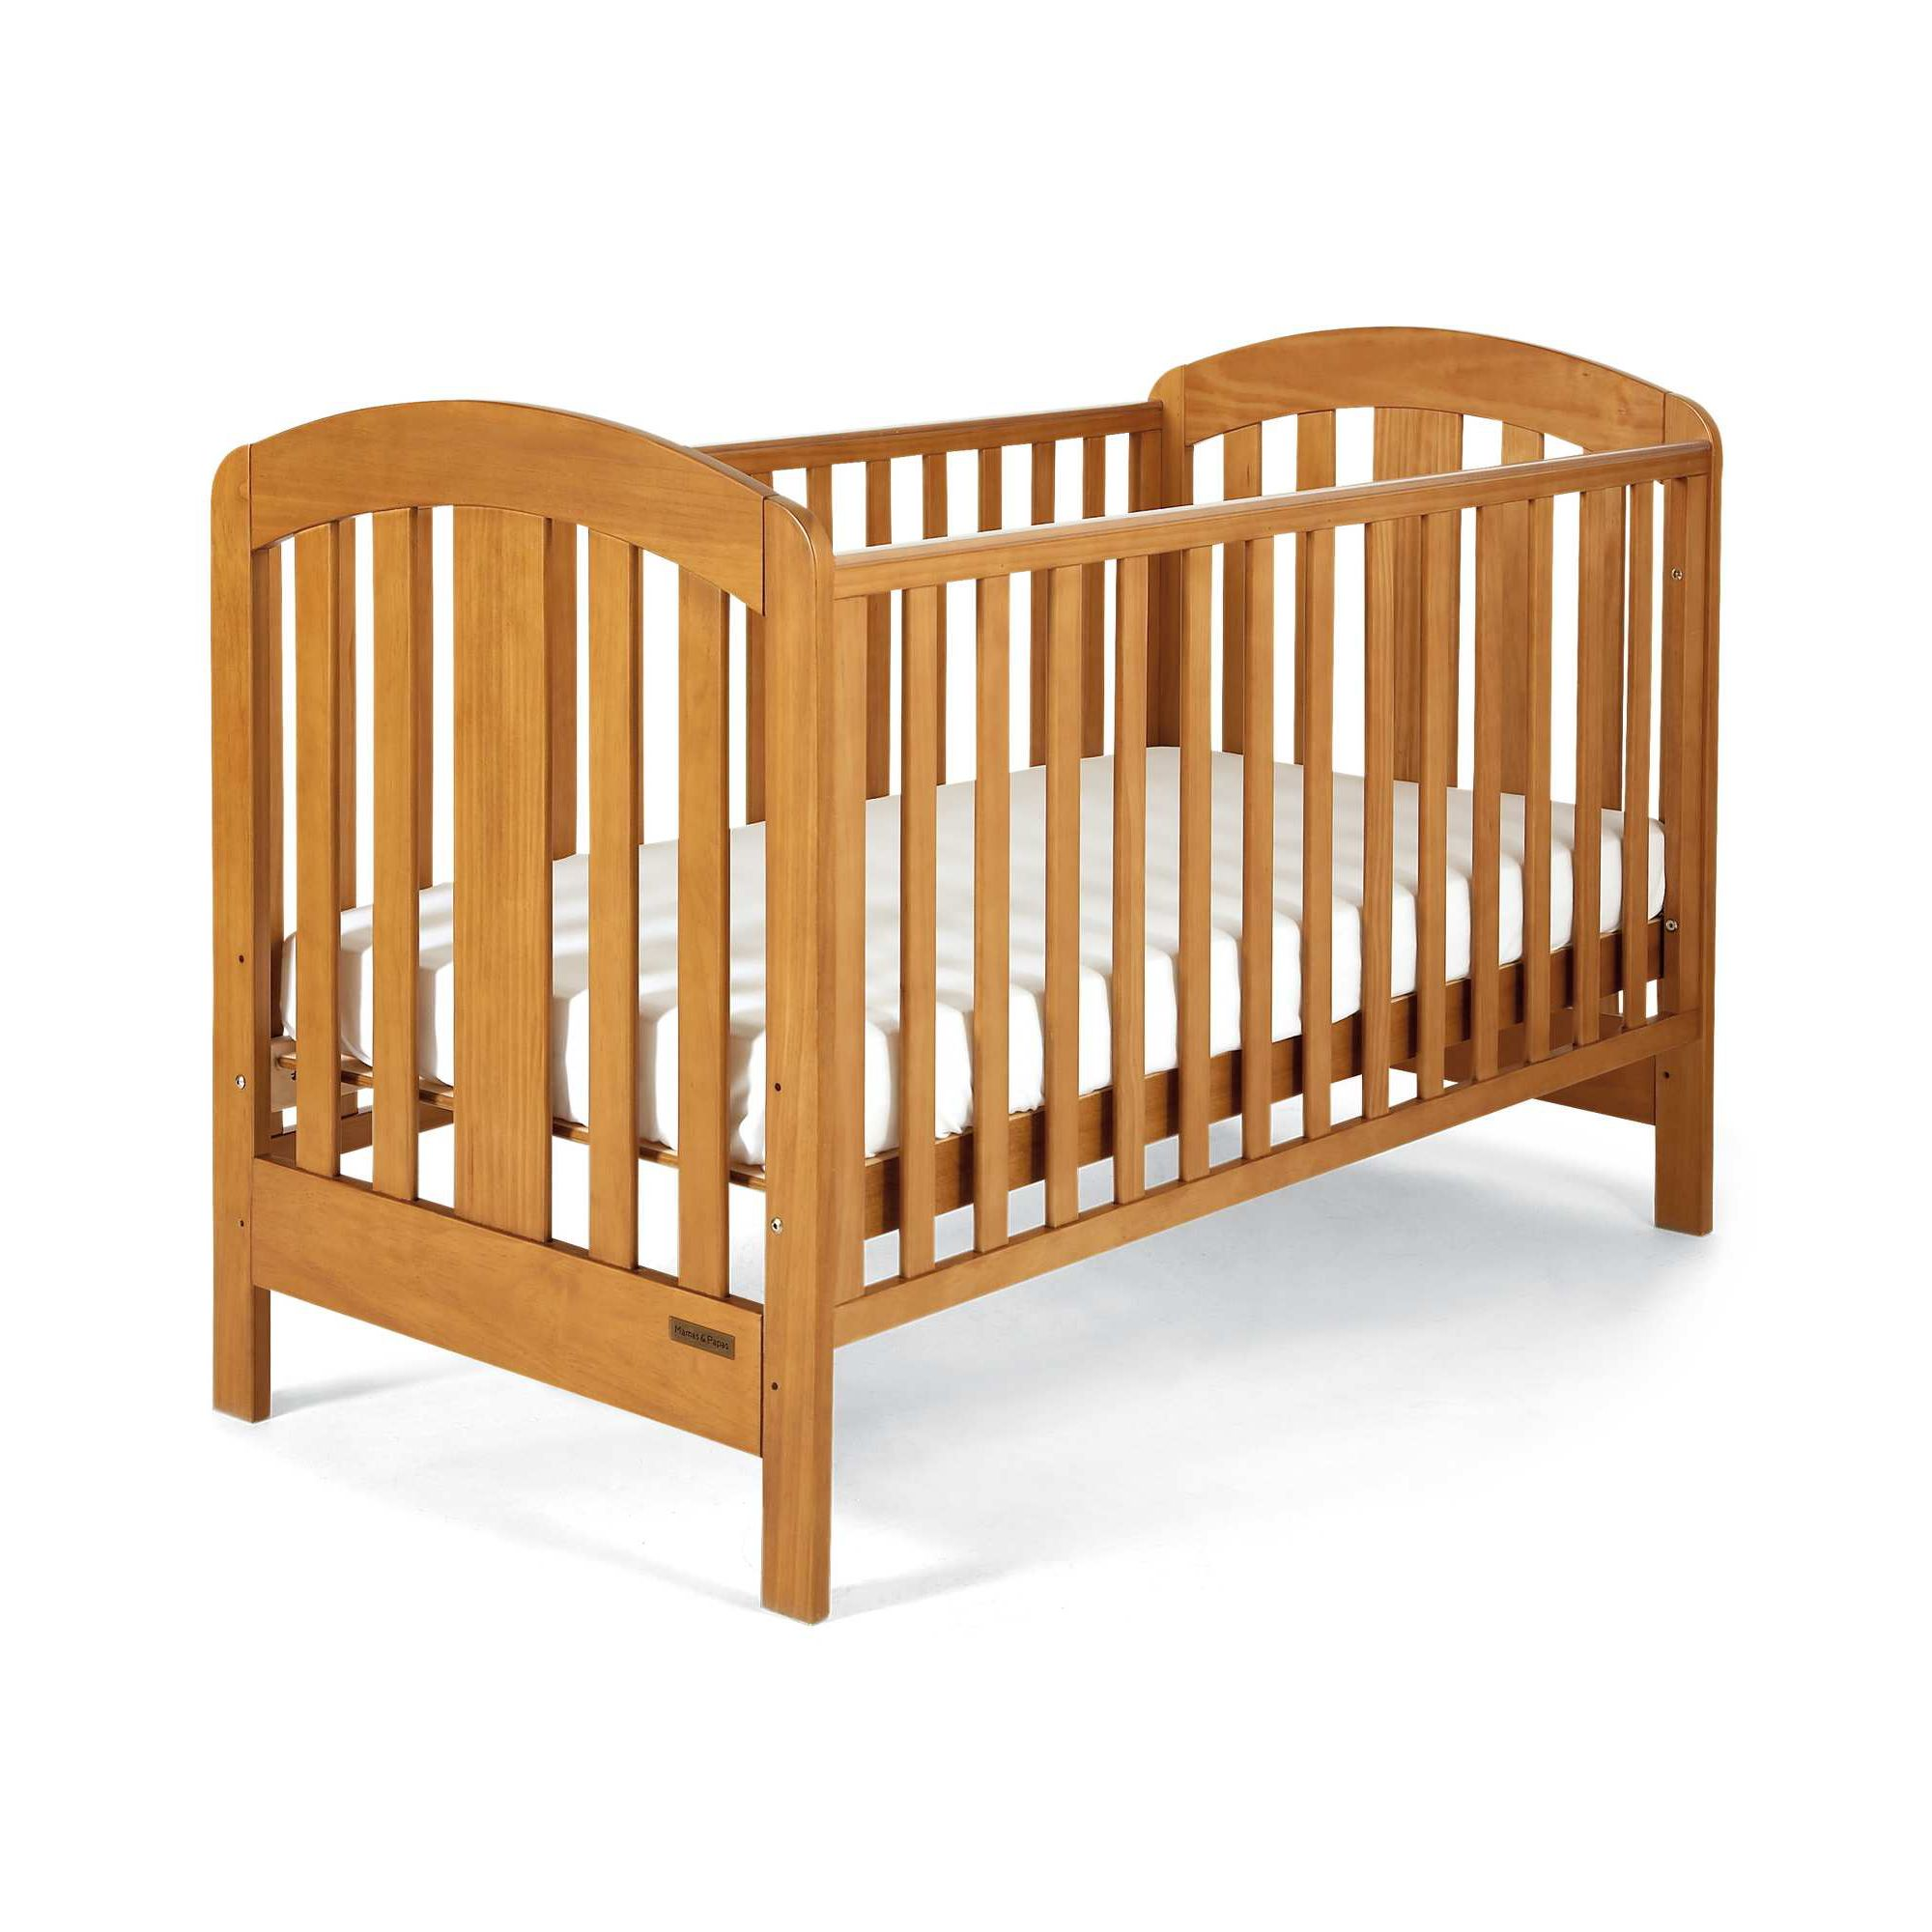 Mamas & Papas - Fern Pine - Cot/Toddler Bed at Tesco Direct